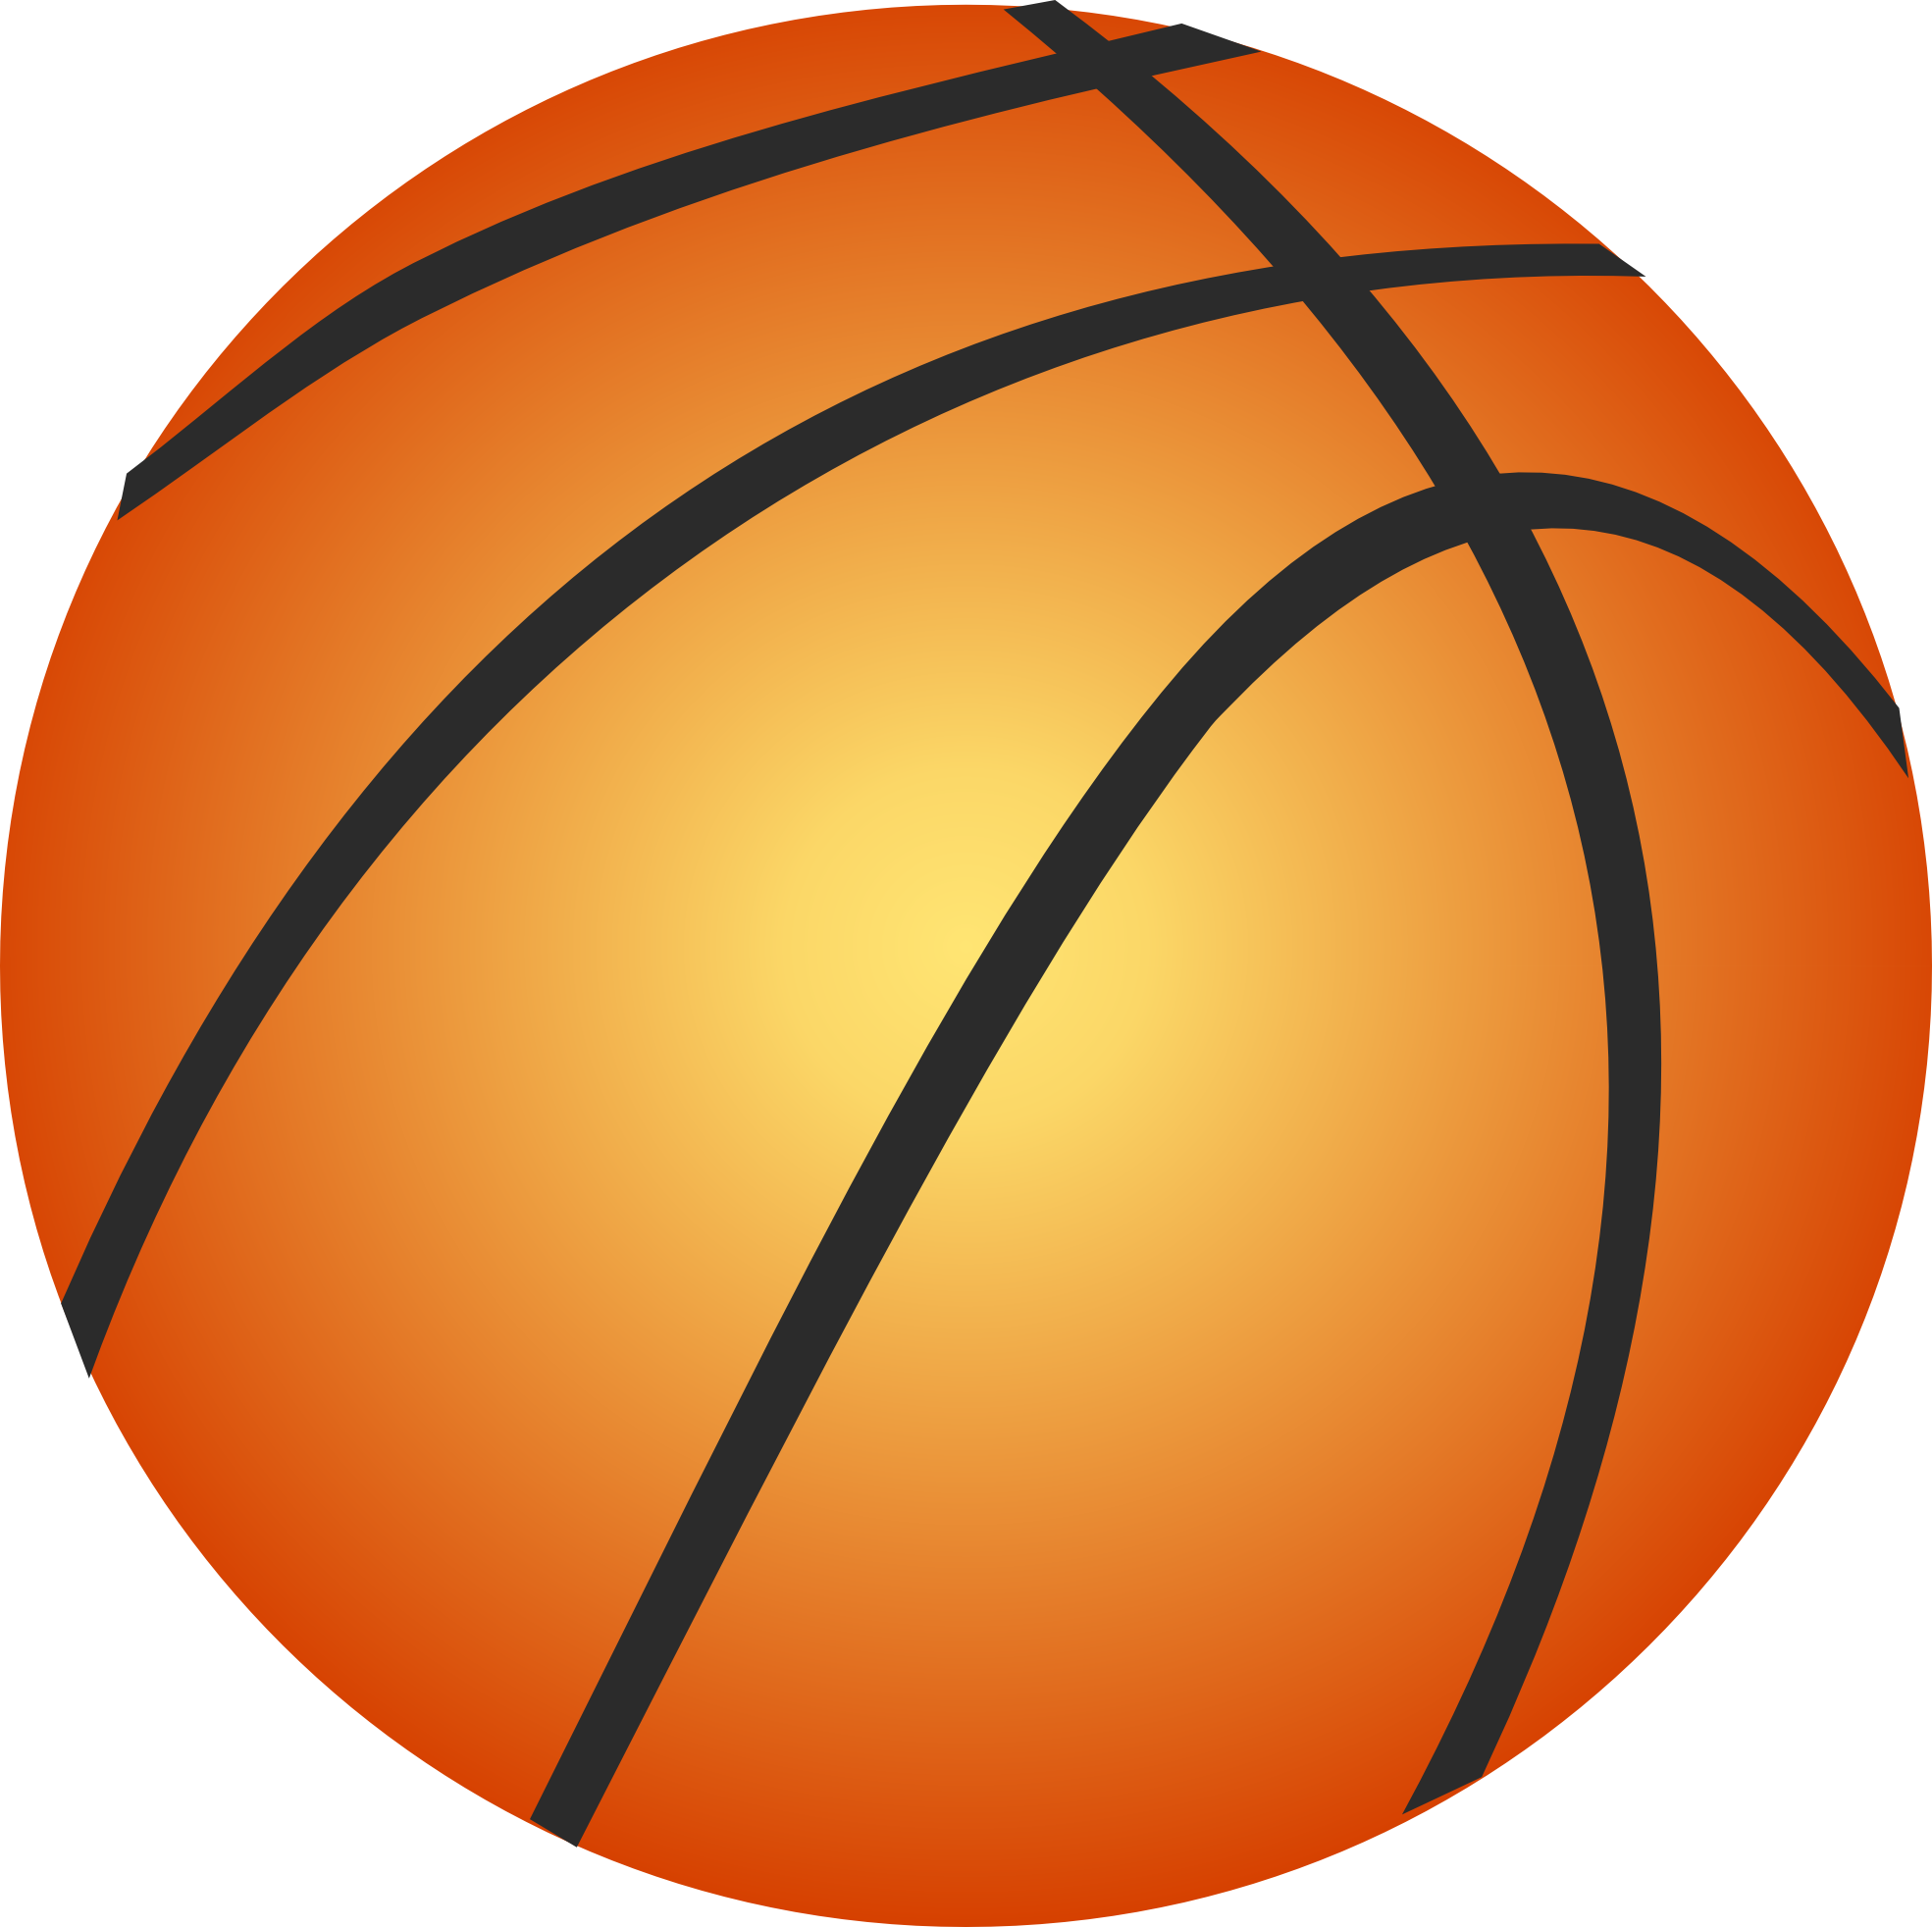 Basketball Court Clipart Black And White-basketball court clipart black and white-1